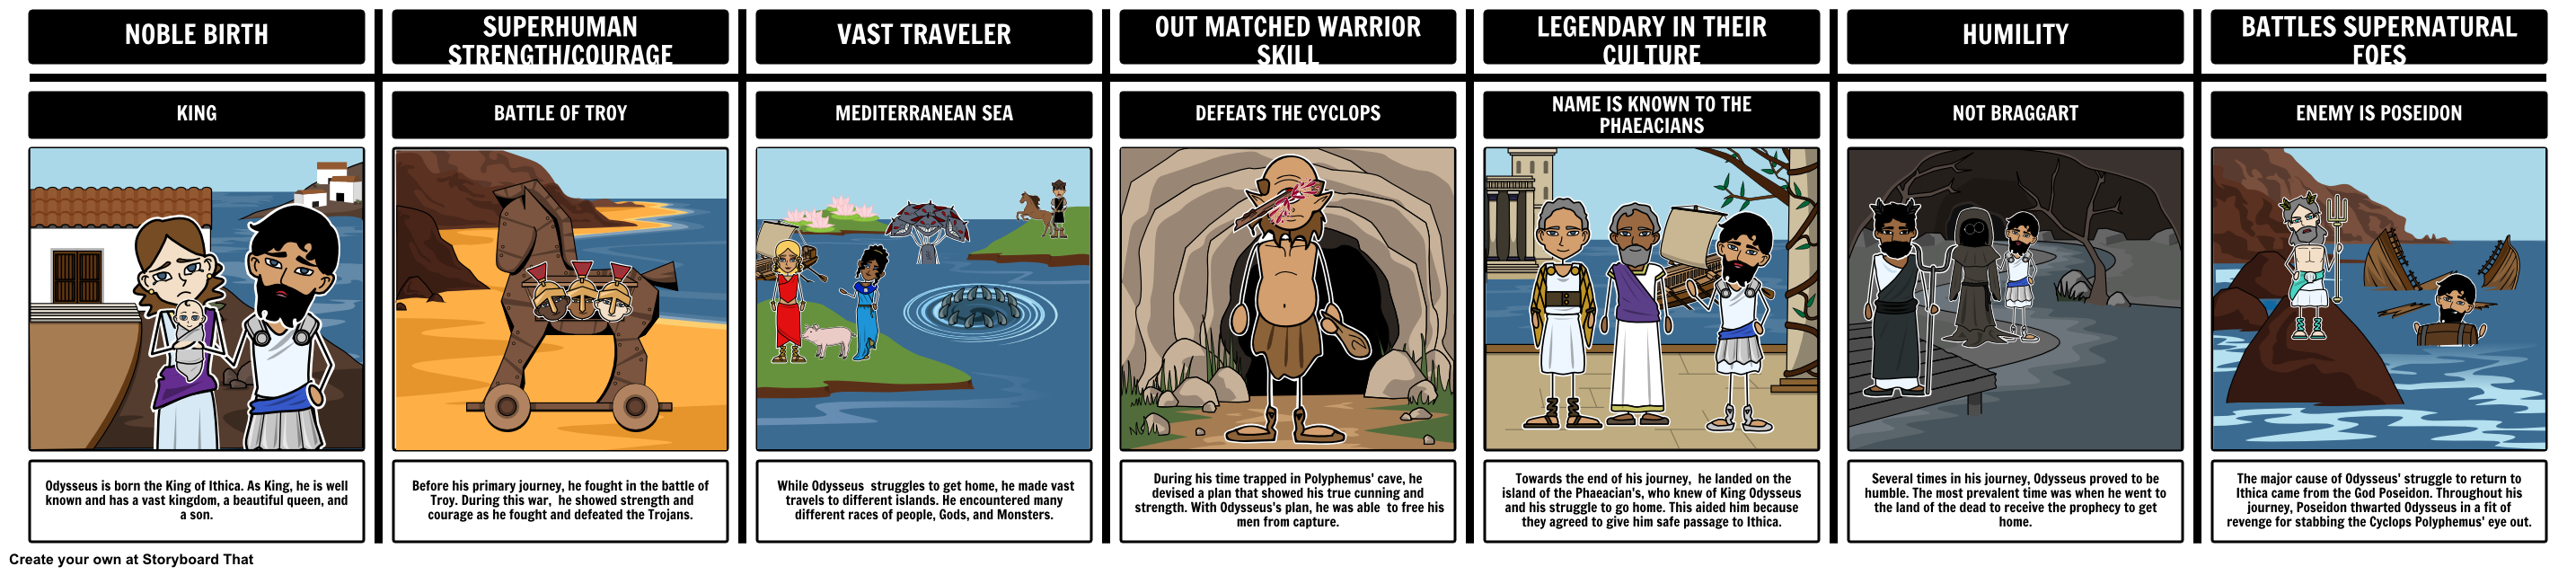 epic hero odysseus the odyssey storyboard by rebeccaray